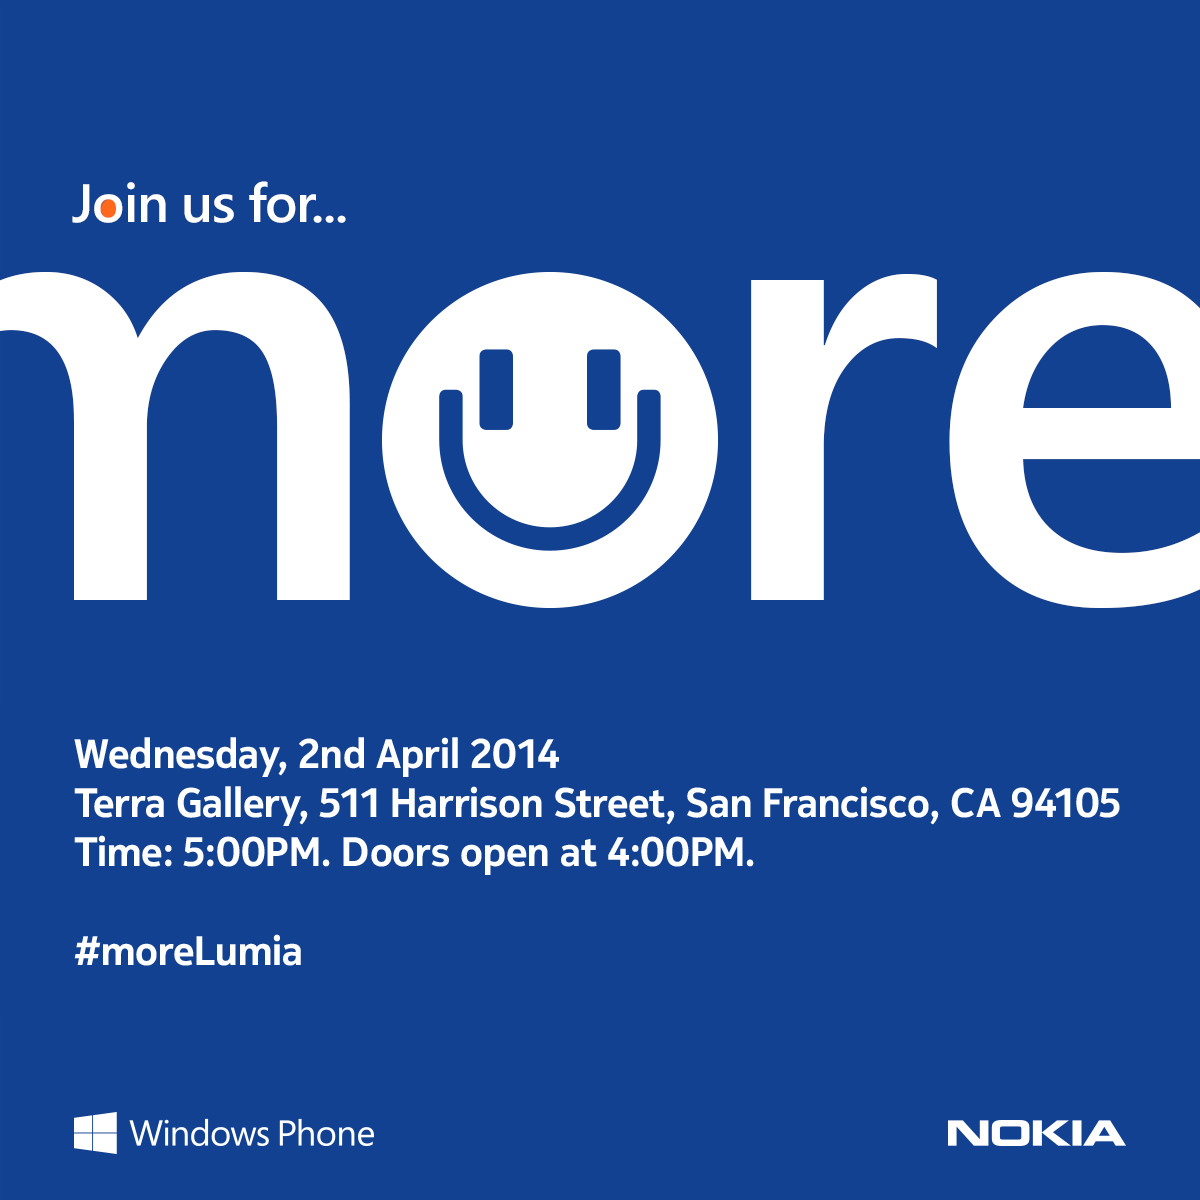 More Invite Nokia hosting more Lumia event on April 2 in San Francisco to talk about Microsofts acquisition